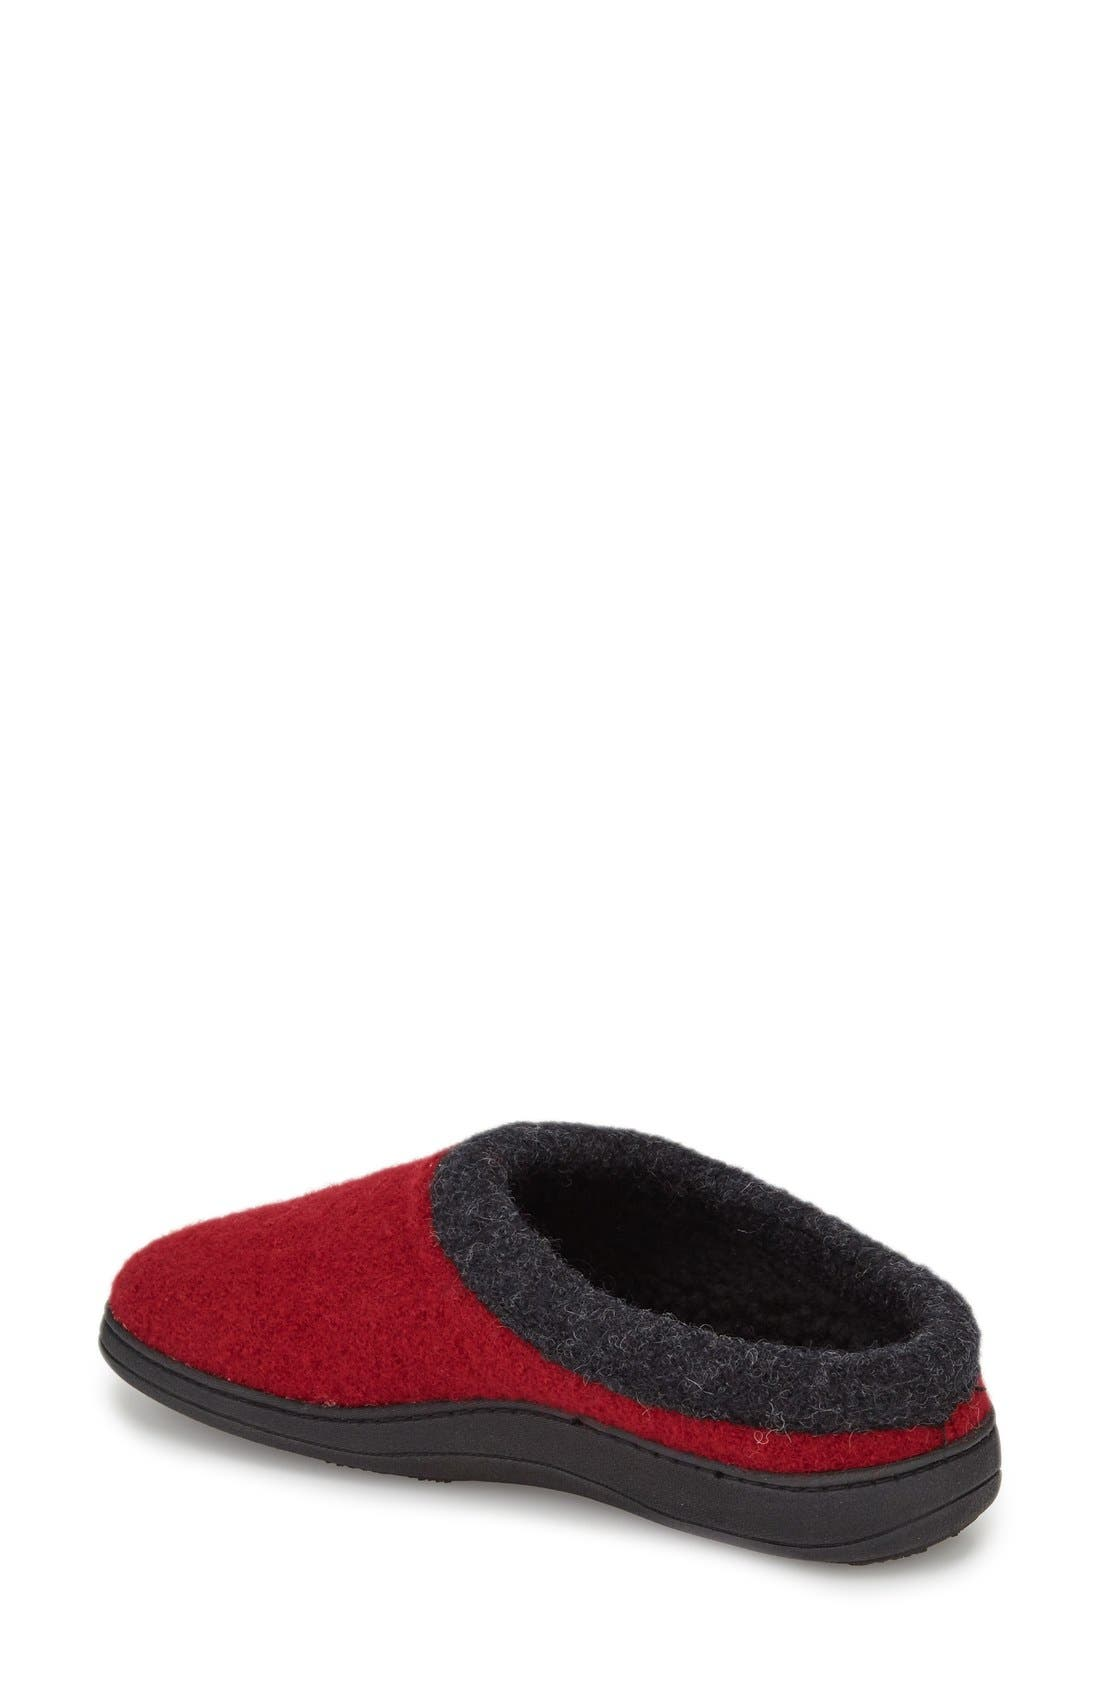 ,                             'Dara' Slipper,                             Alternate thumbnail 40, color,                             600